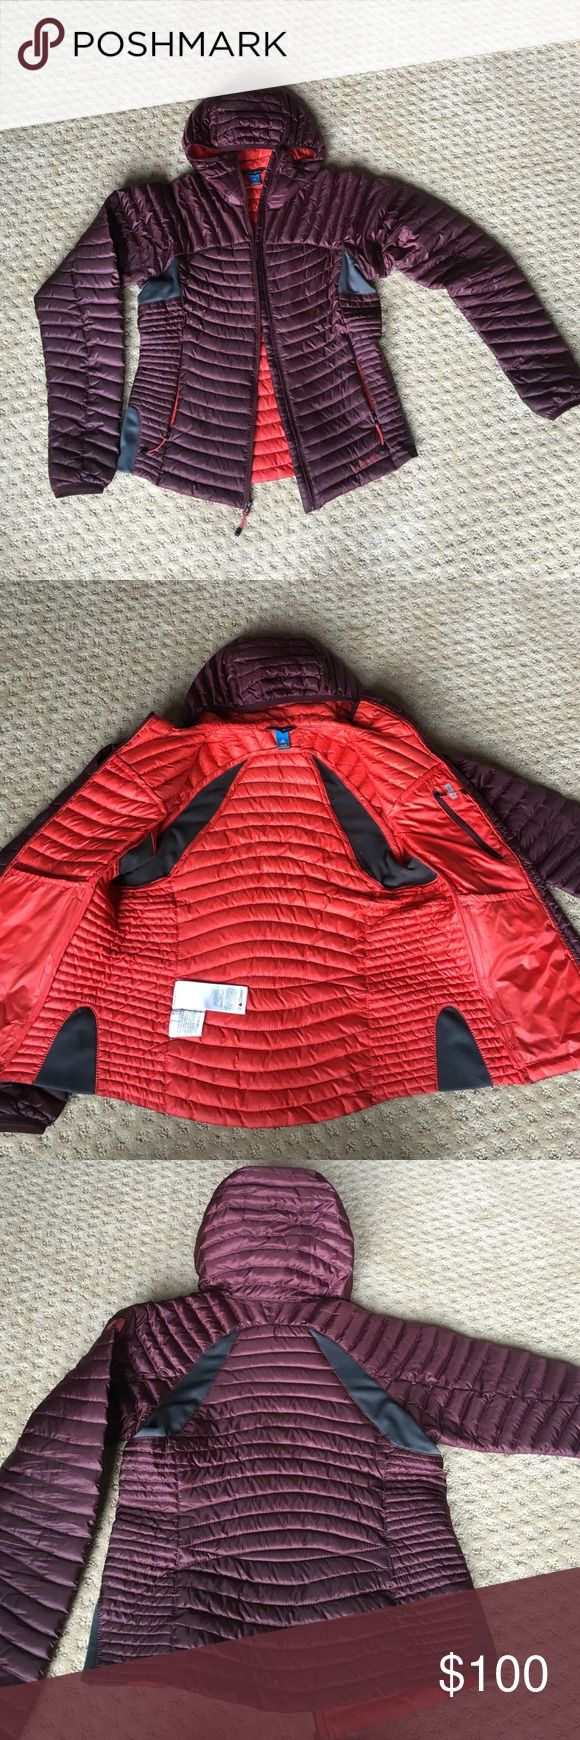 Women's MicroTherm StormDown Hooded Jacket Only worn once! Burgundy Eddie Bauer MicroTherm technology - ultralight and very warm. Orange interior. Two front zip pockets. Two inside - one zip and one deep stash on the inside breast. Goose Down insulated. Additional photos/info can be provided upon request! M for less. Jacket can be rolled up and packed into its own pocket for traveling. Eddie Bauer Jackets & Coats